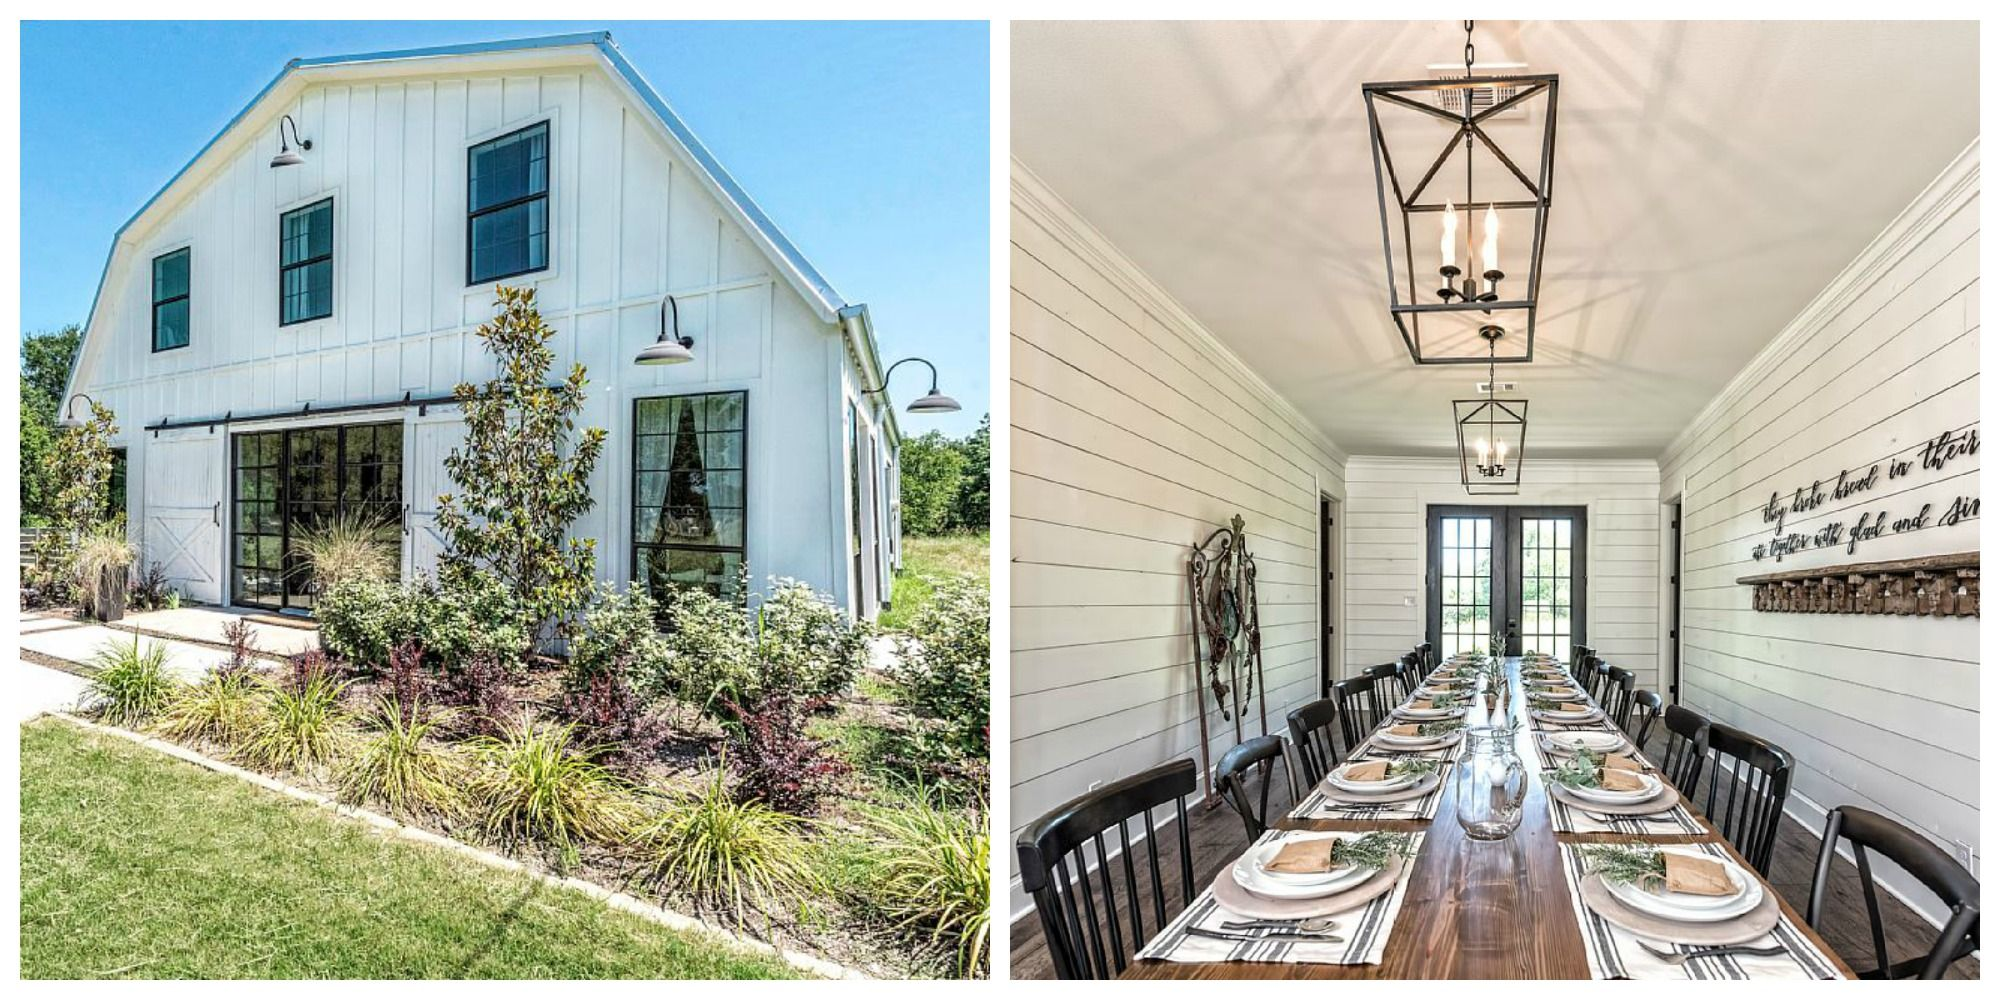 This Barndominium From Fixer Upper Is Now Available To Rent Waco Texas Home Rentals